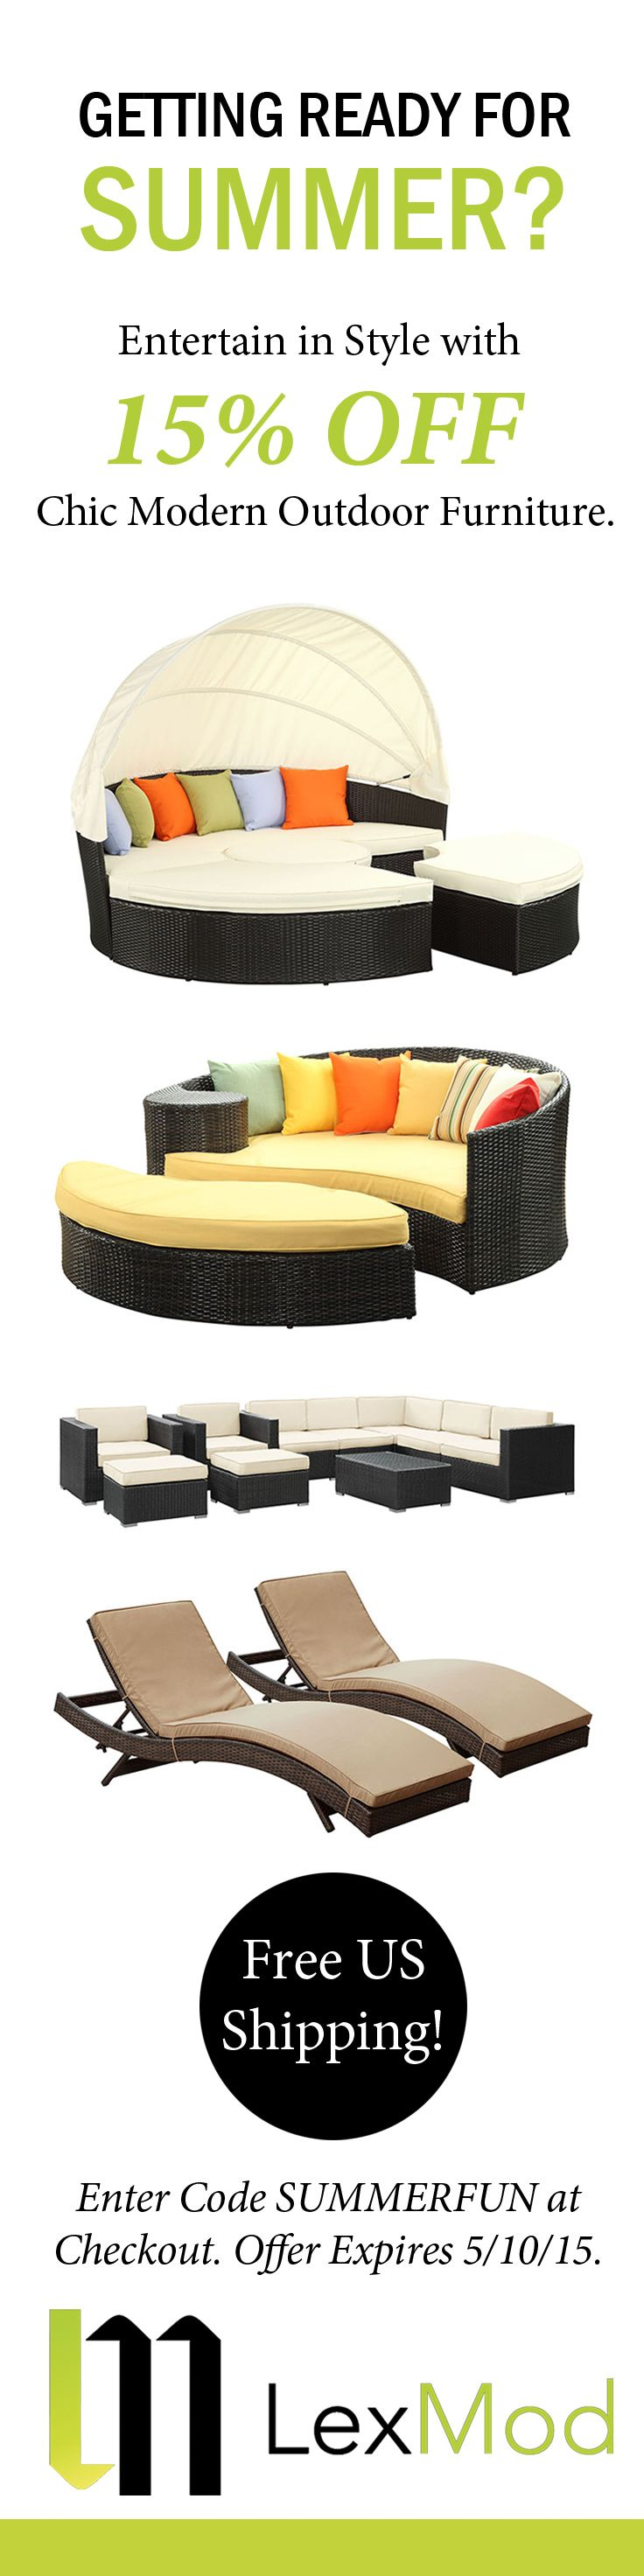 Get Read for Summer with the Mod Outdoor Patio Furniture Sale Going on Now at Lexmod.com!